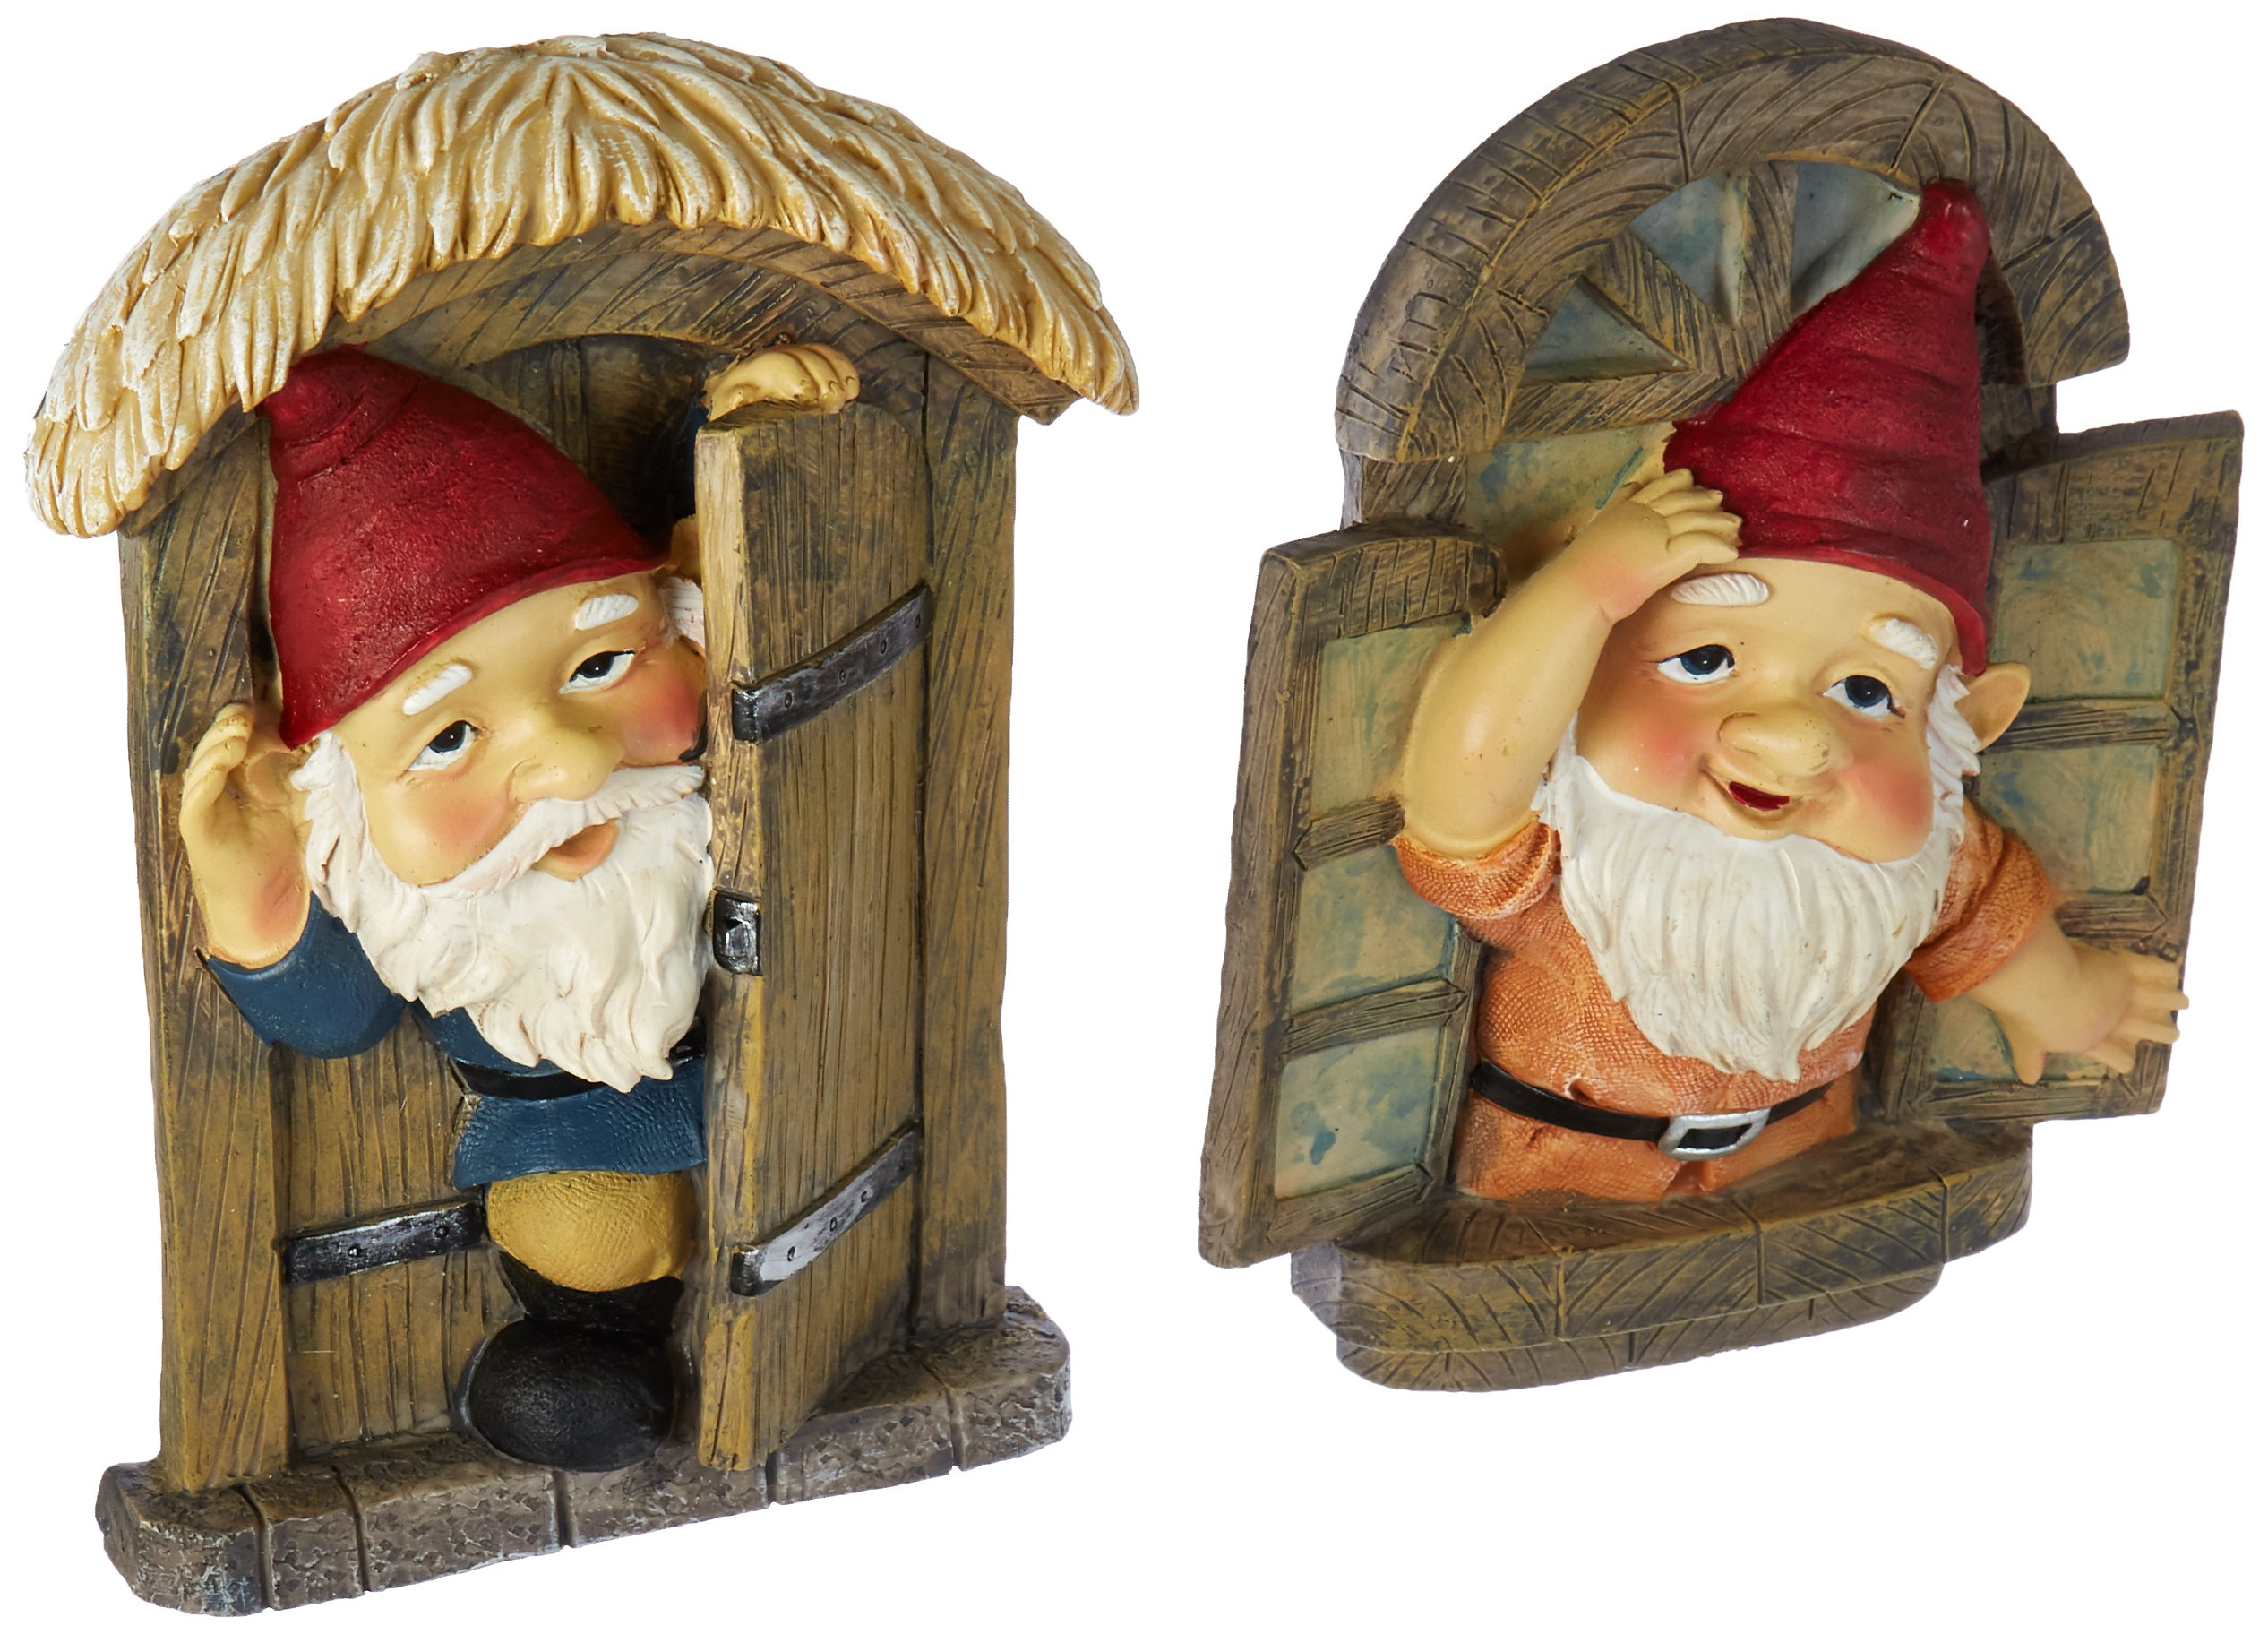 Design Toscano Garden Gnome Statue - Knothole Welcome Gnomes - Gnome Tree Door & Window Set - Fairy Garden - Gnome Village